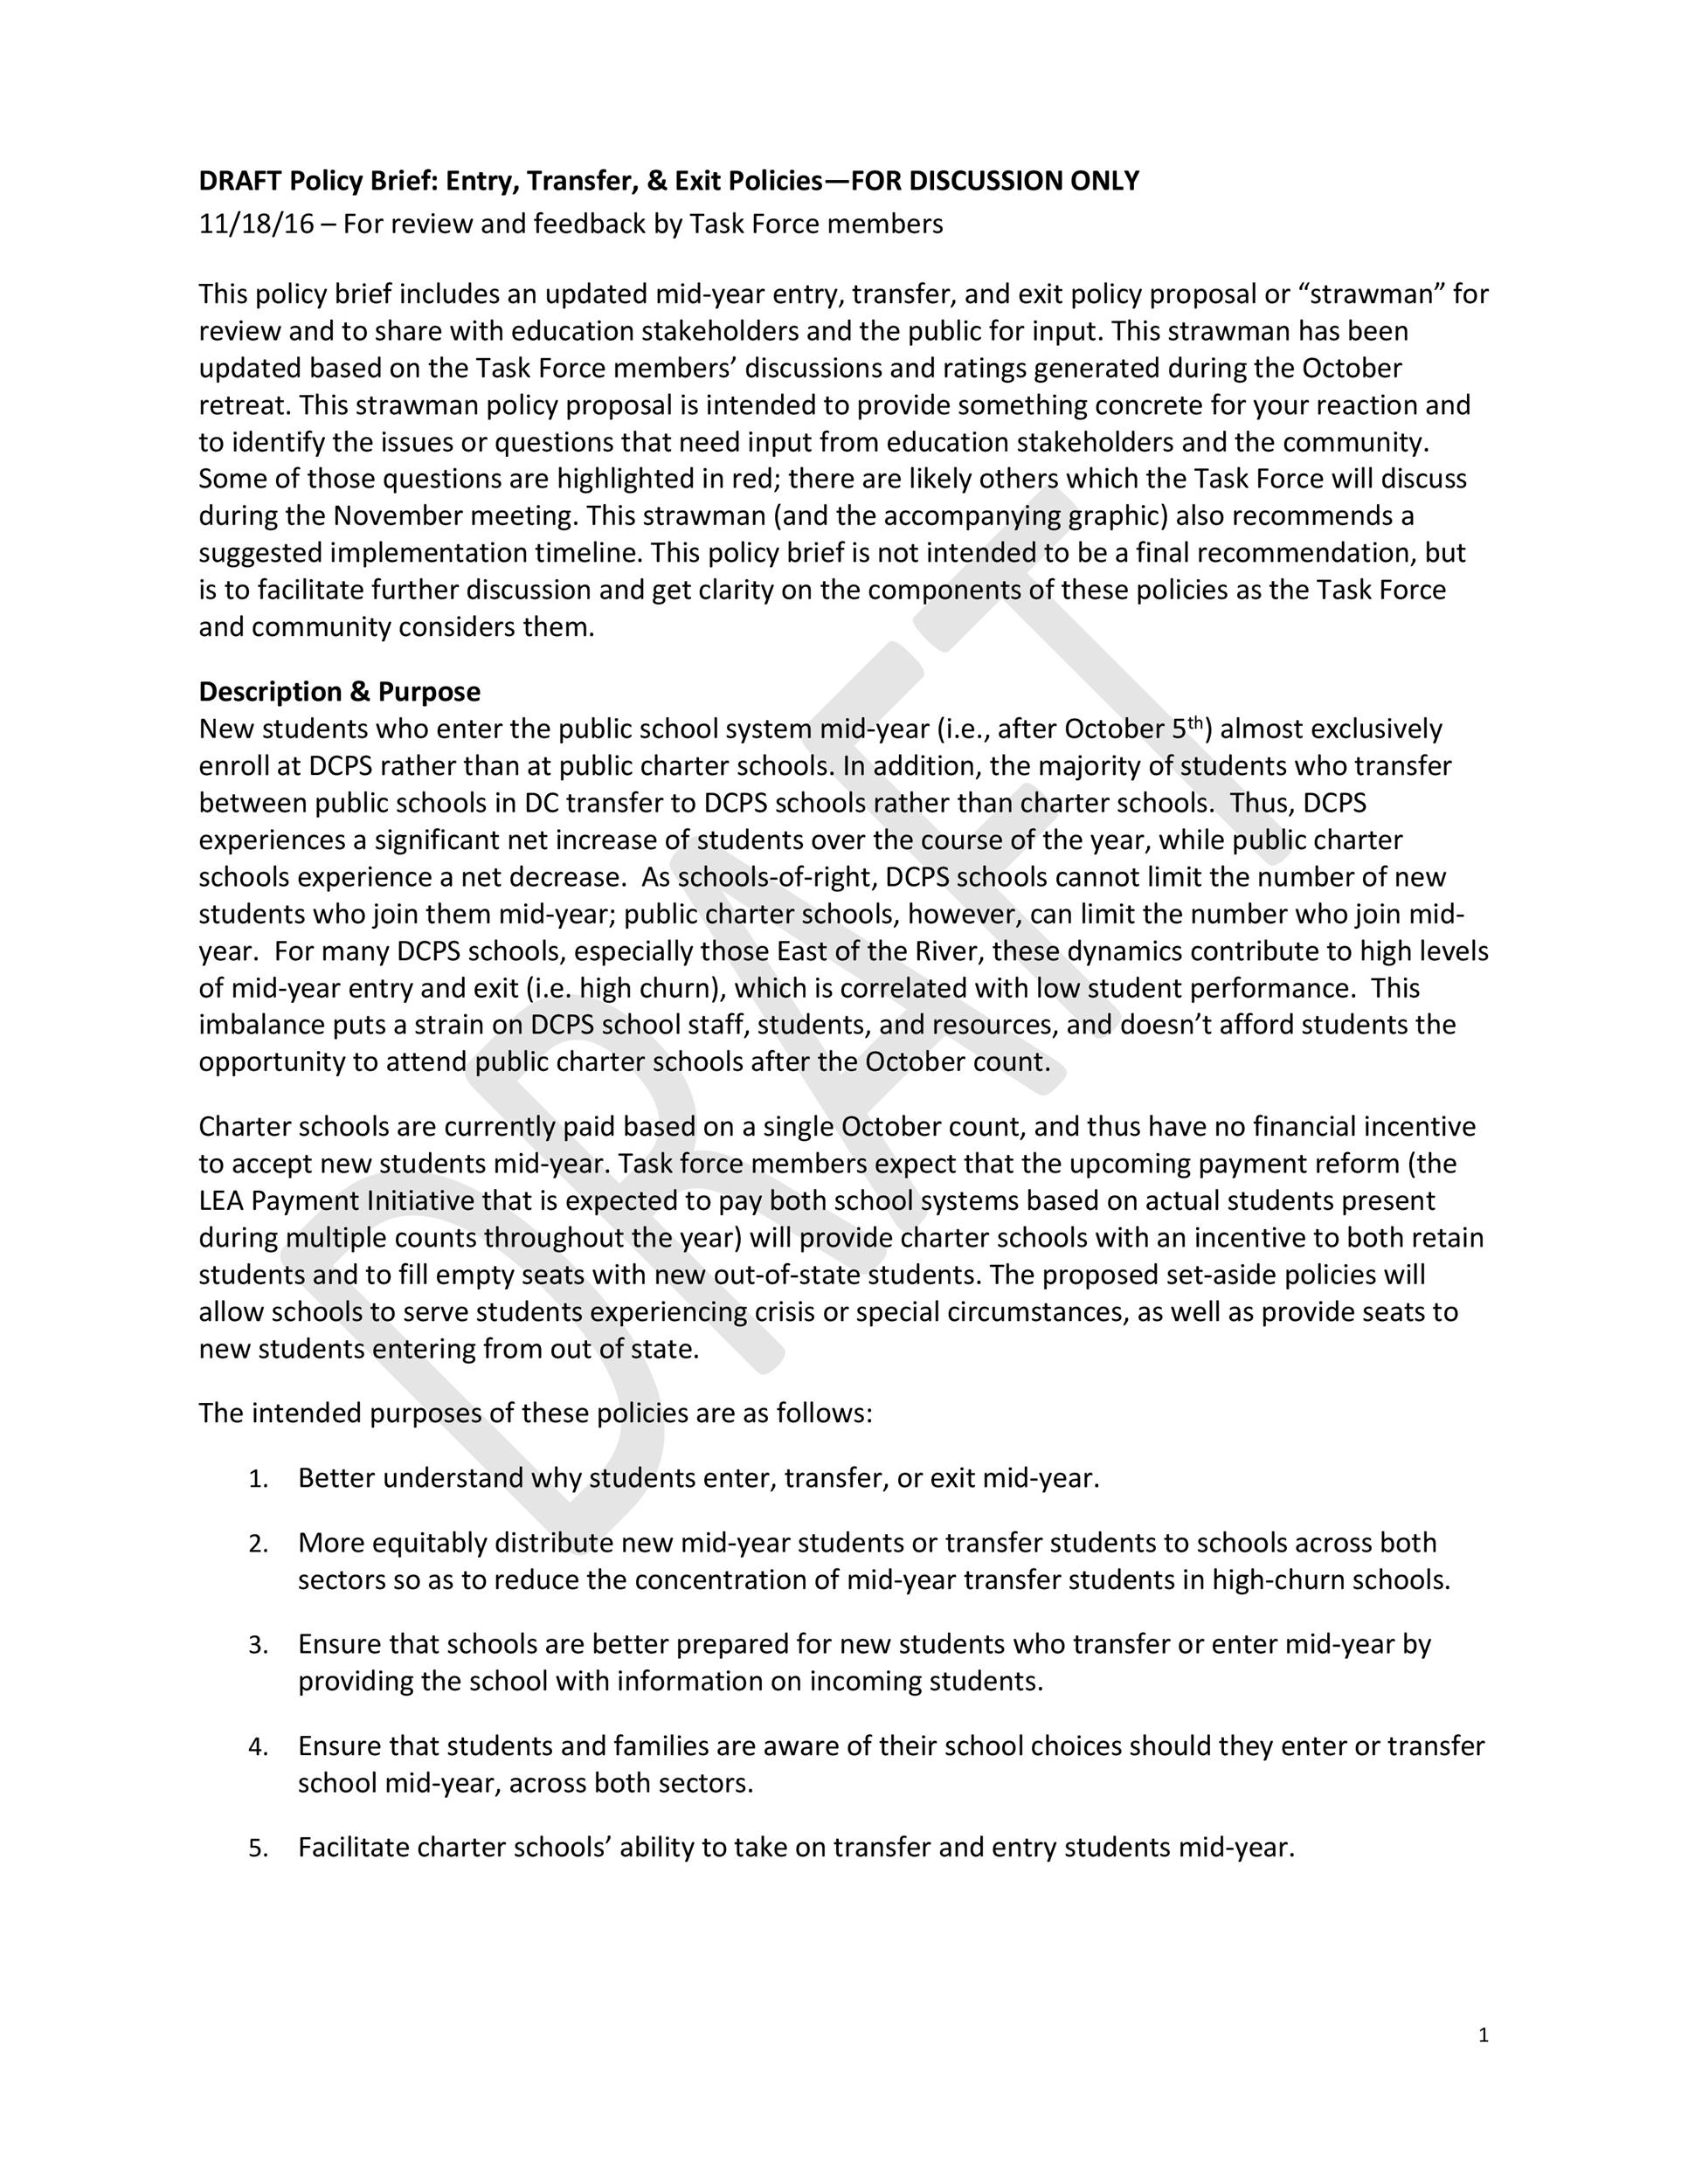 Free policy brief template 15